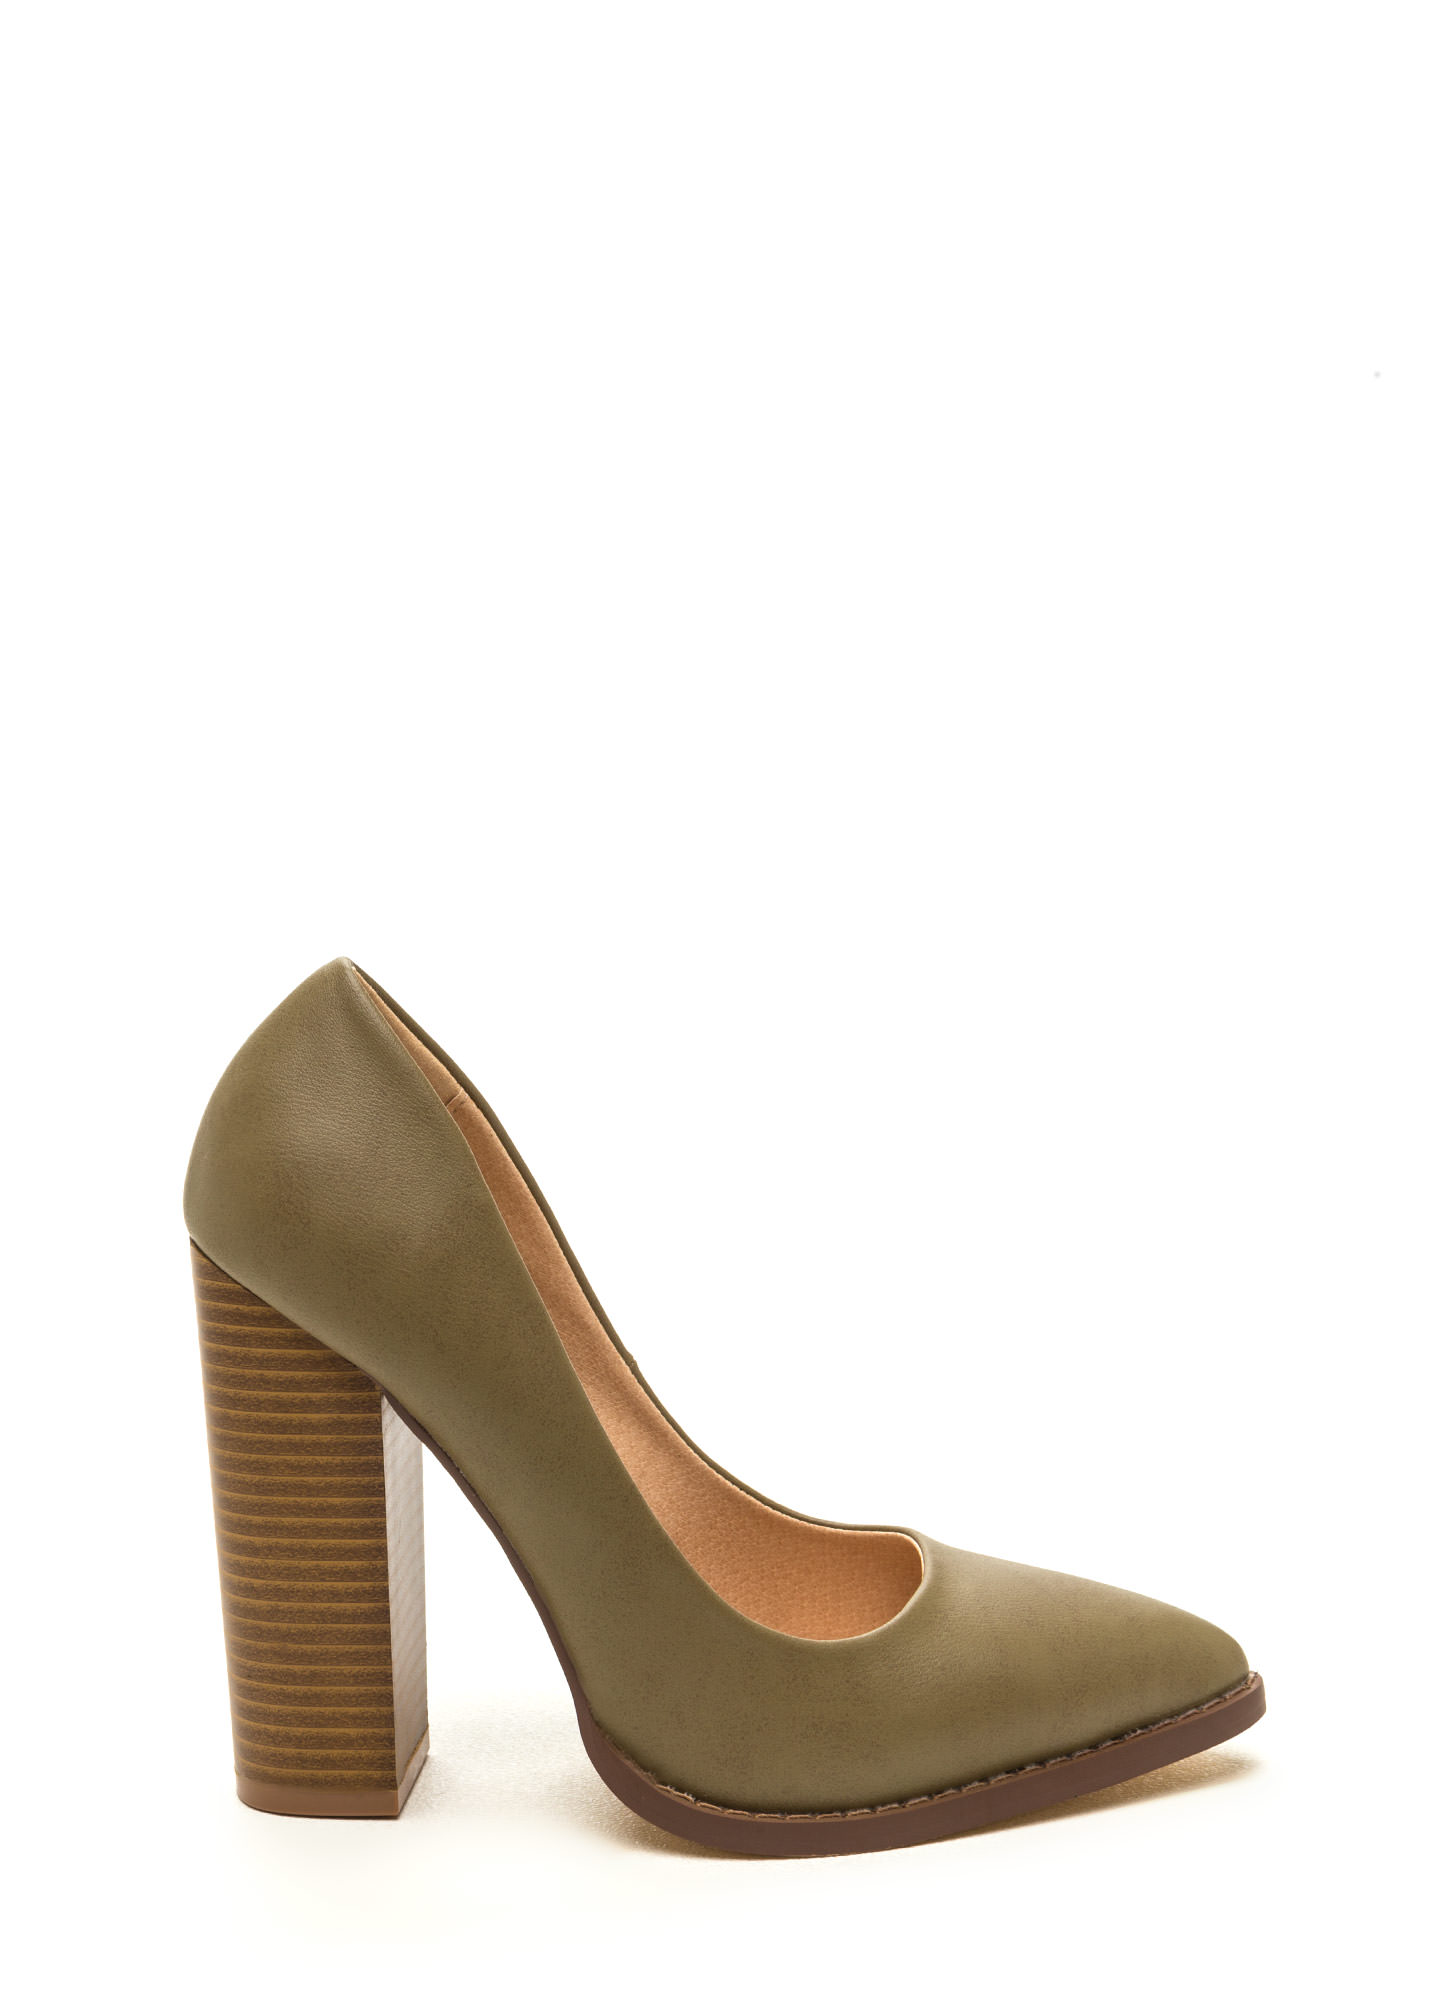 Executive Office Chunky Pointy Toe Heels OLIVE